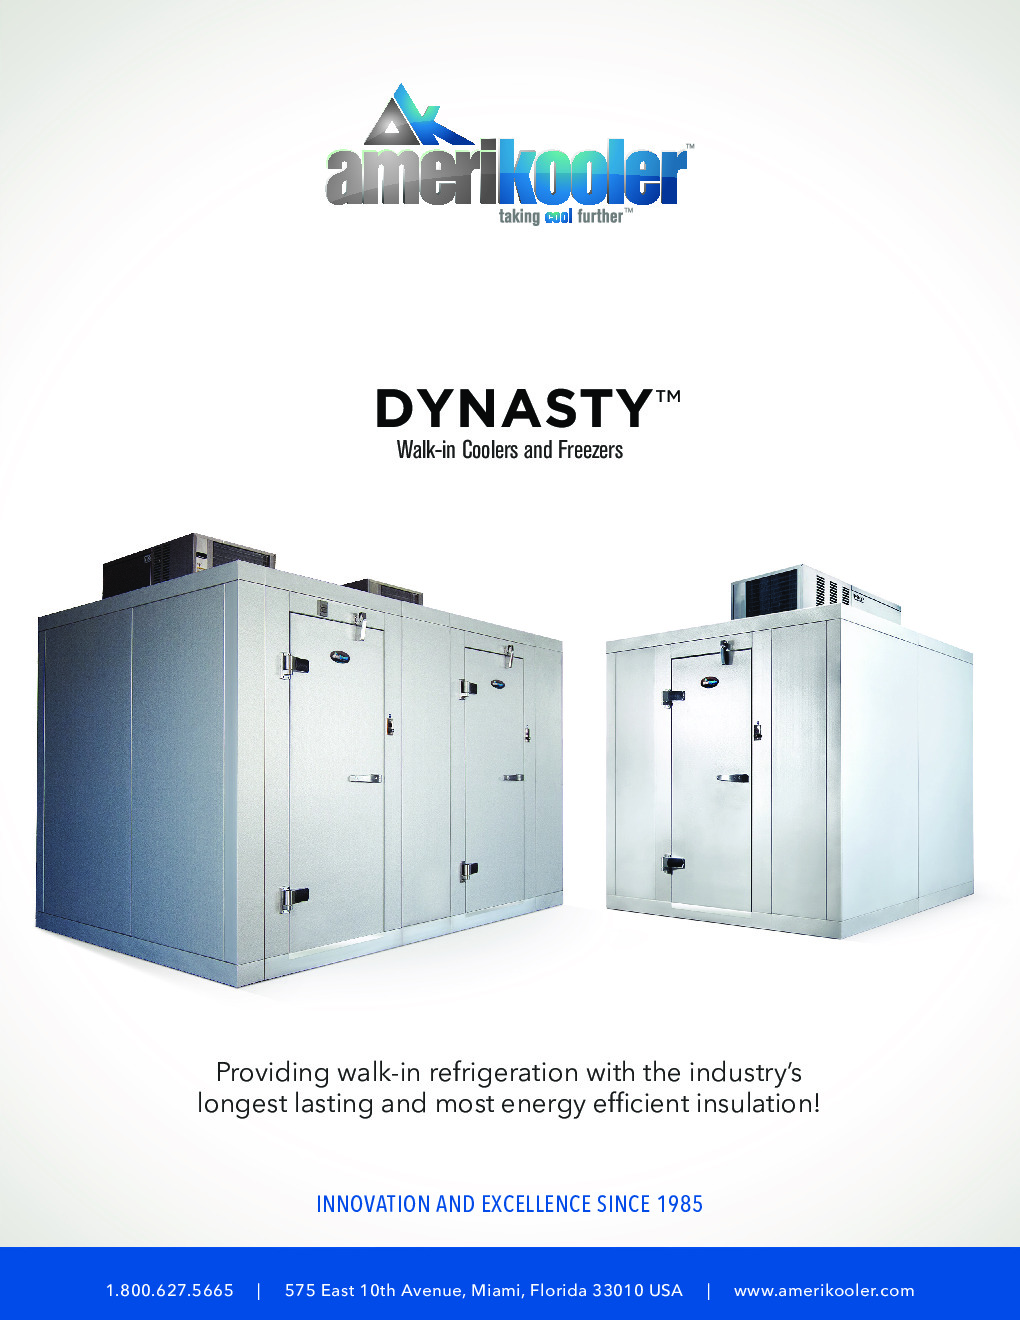 AmeriKooler DW071277N-5/7-RM 7' X 12' Walk-In Cooler, 7' L Cooler without Floor and 5' L Freezer, Remote